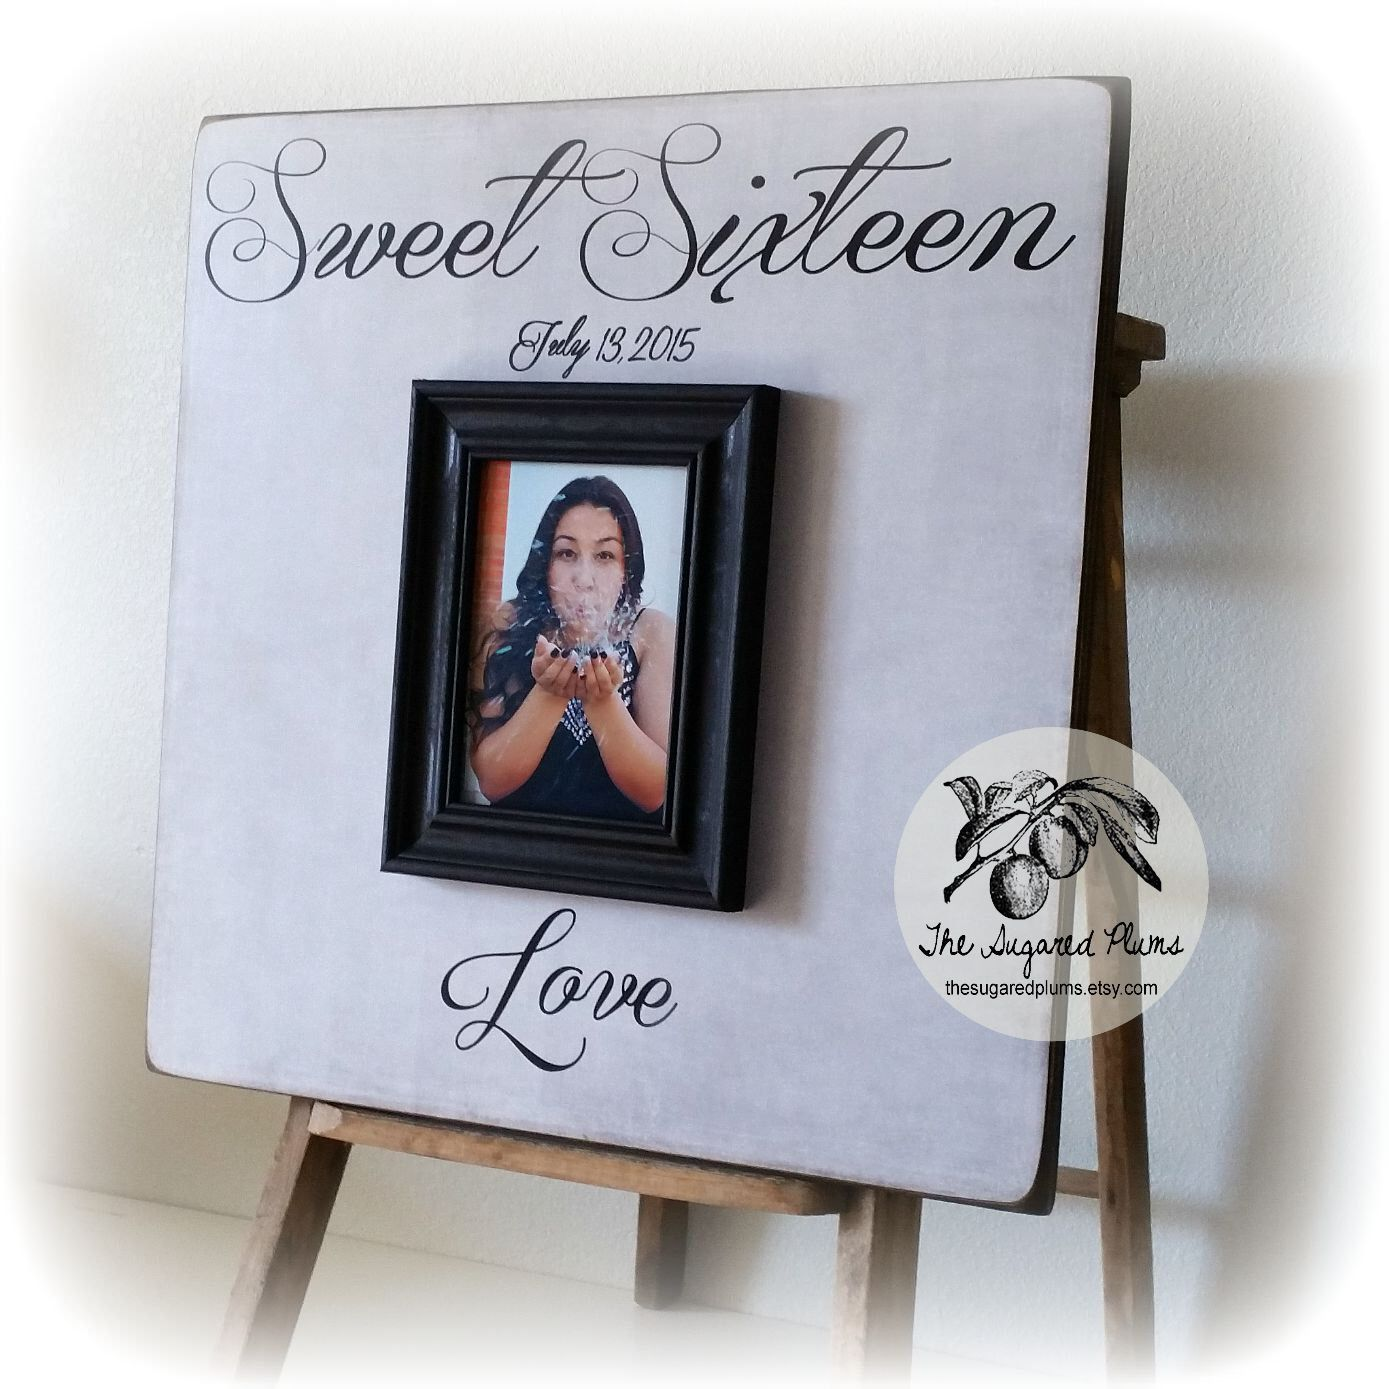 Sweet 16 Decoration Guest Book Alternative, Gold Sparkles, Welcome Sign Sweet Sixteen, Quinceanera, 20x20 The Sugared Plums